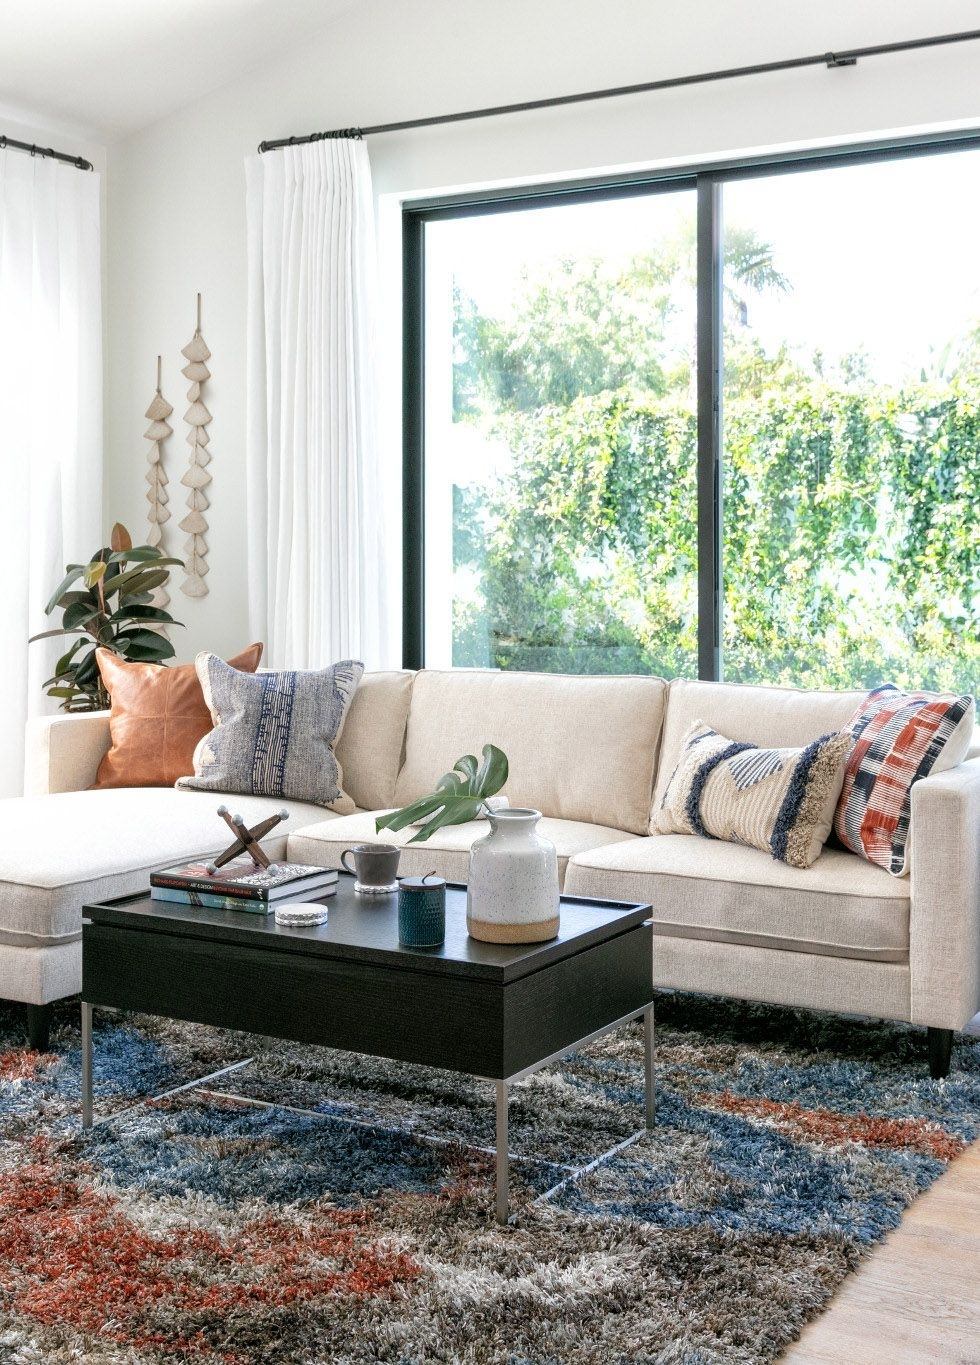 Cosmos Natural 2 Piece Sectional W/laf Chaise In 2018 | Sofas And With Regard To Cosmos Grey 2 Piece Sectionals With Laf Chaise (View 9 of 25)